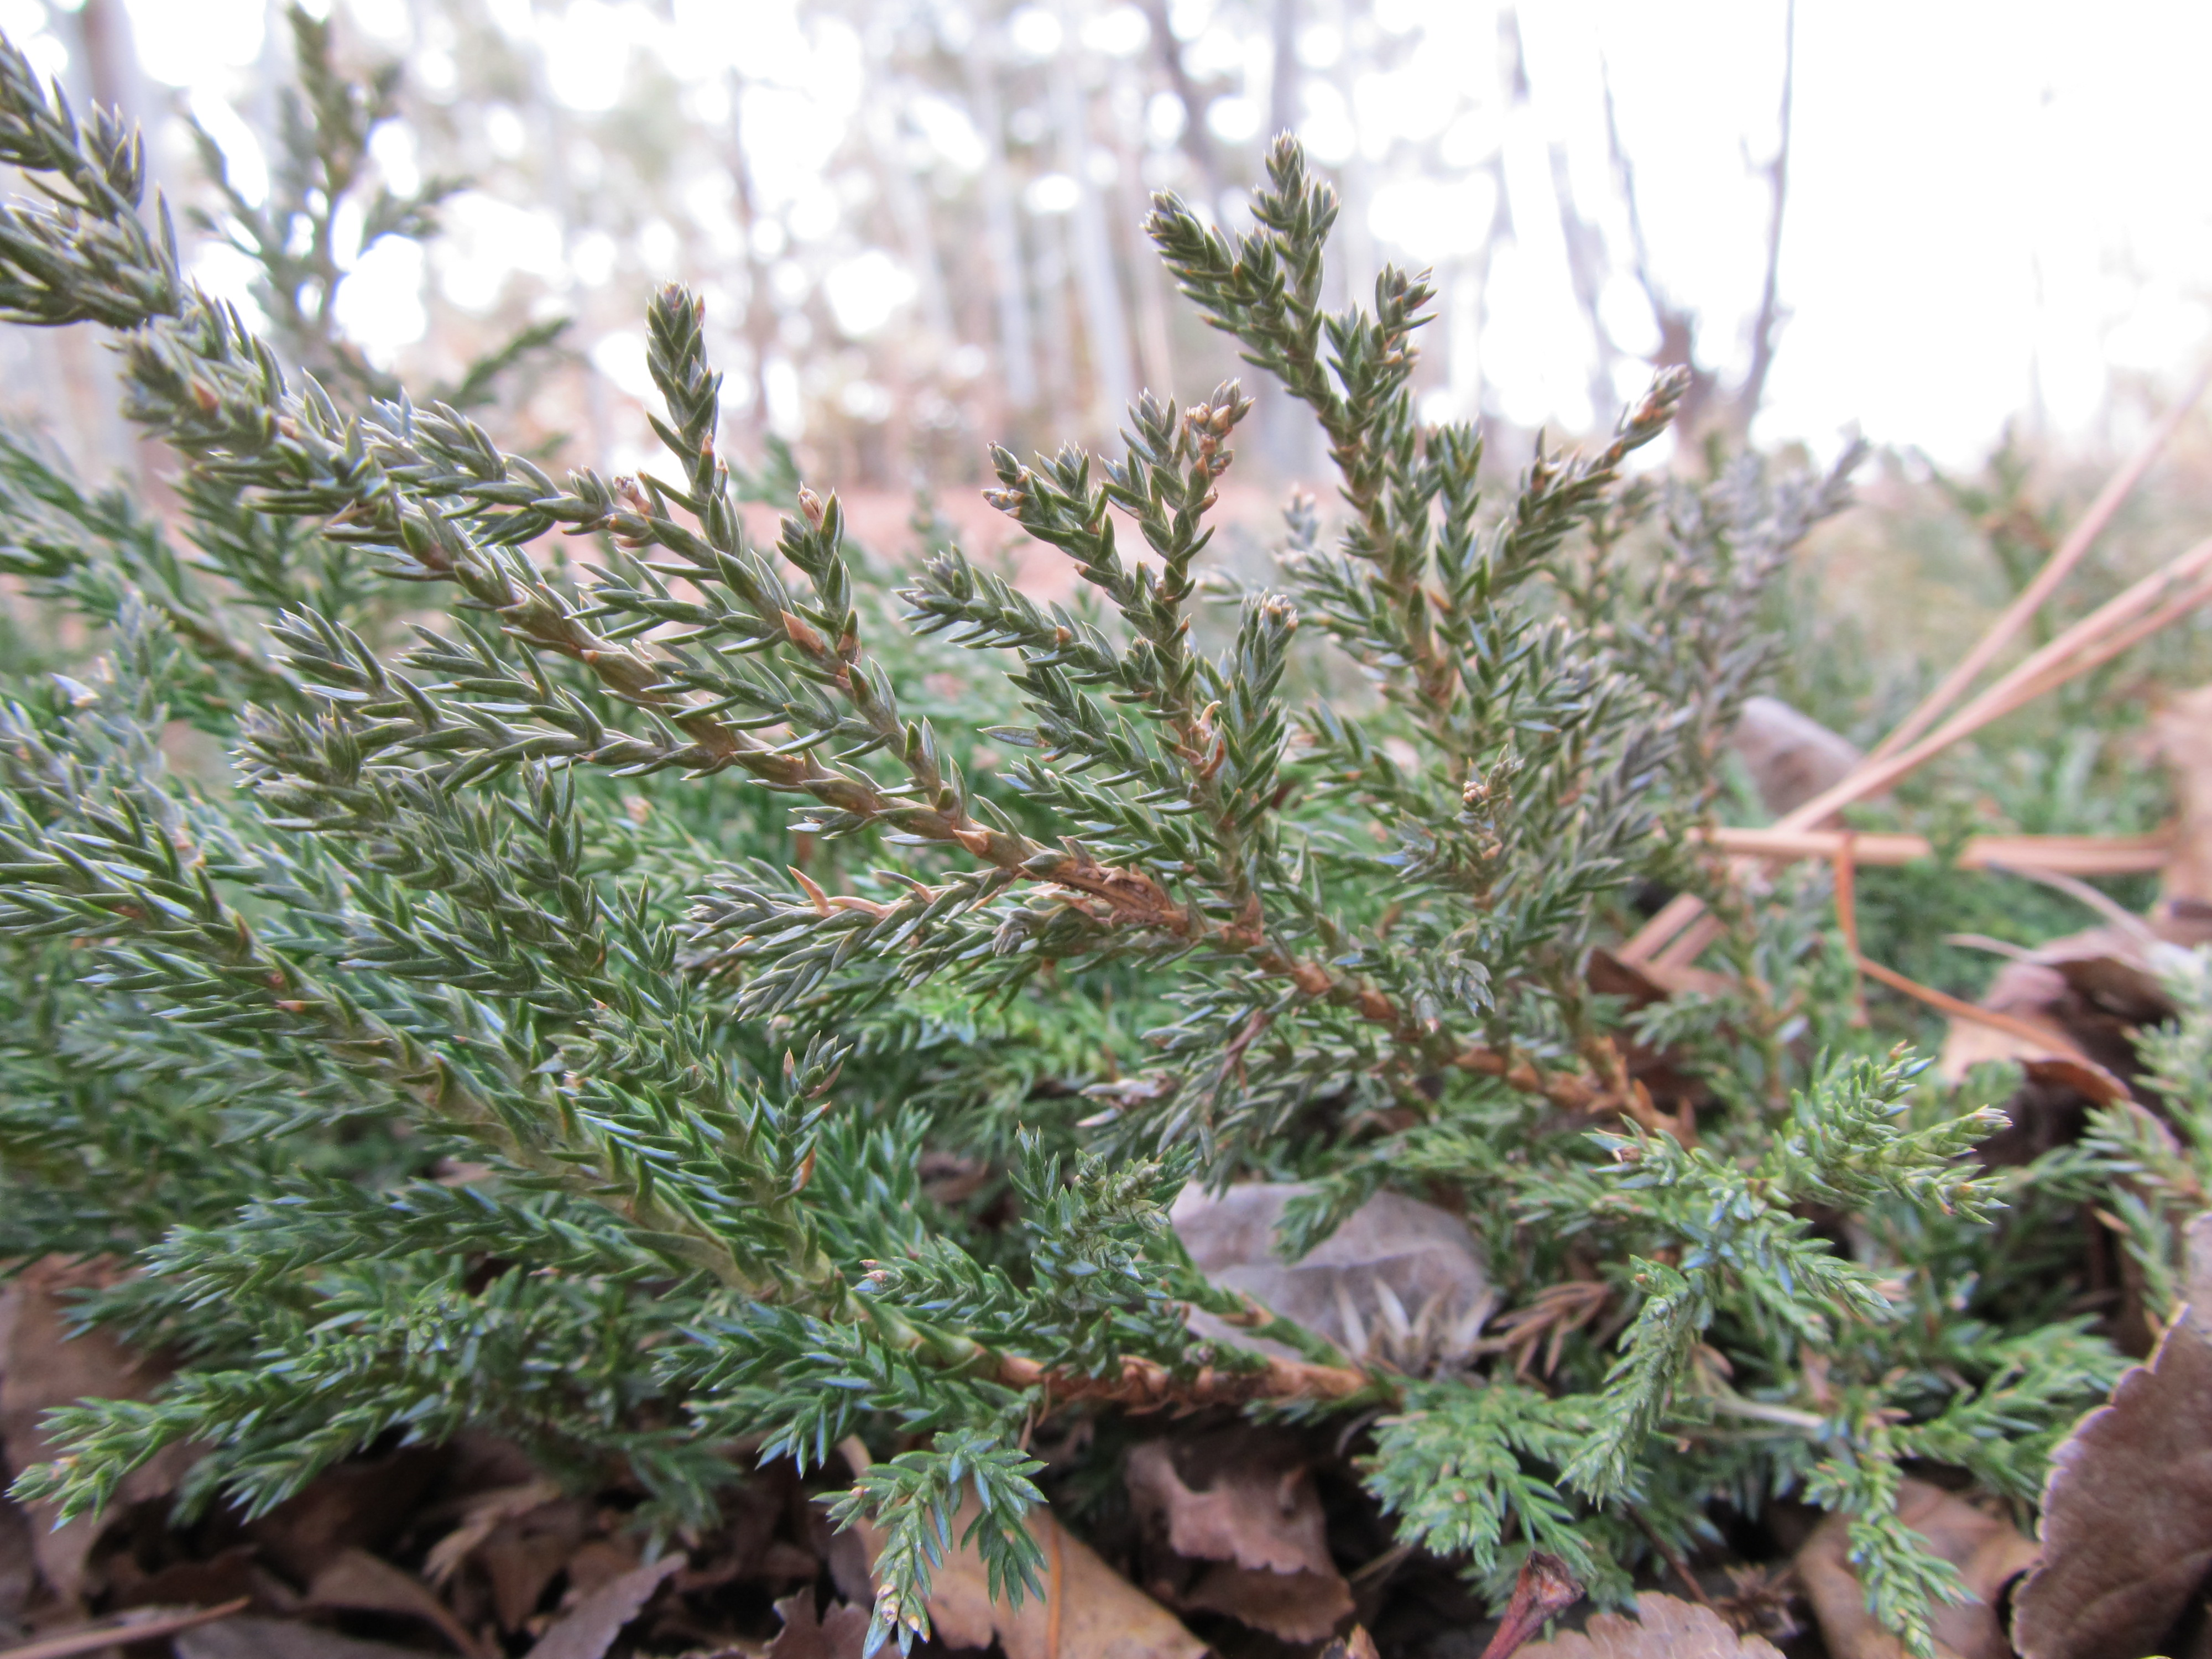 Drought Tolerant Plants The Junipers  awkward botany